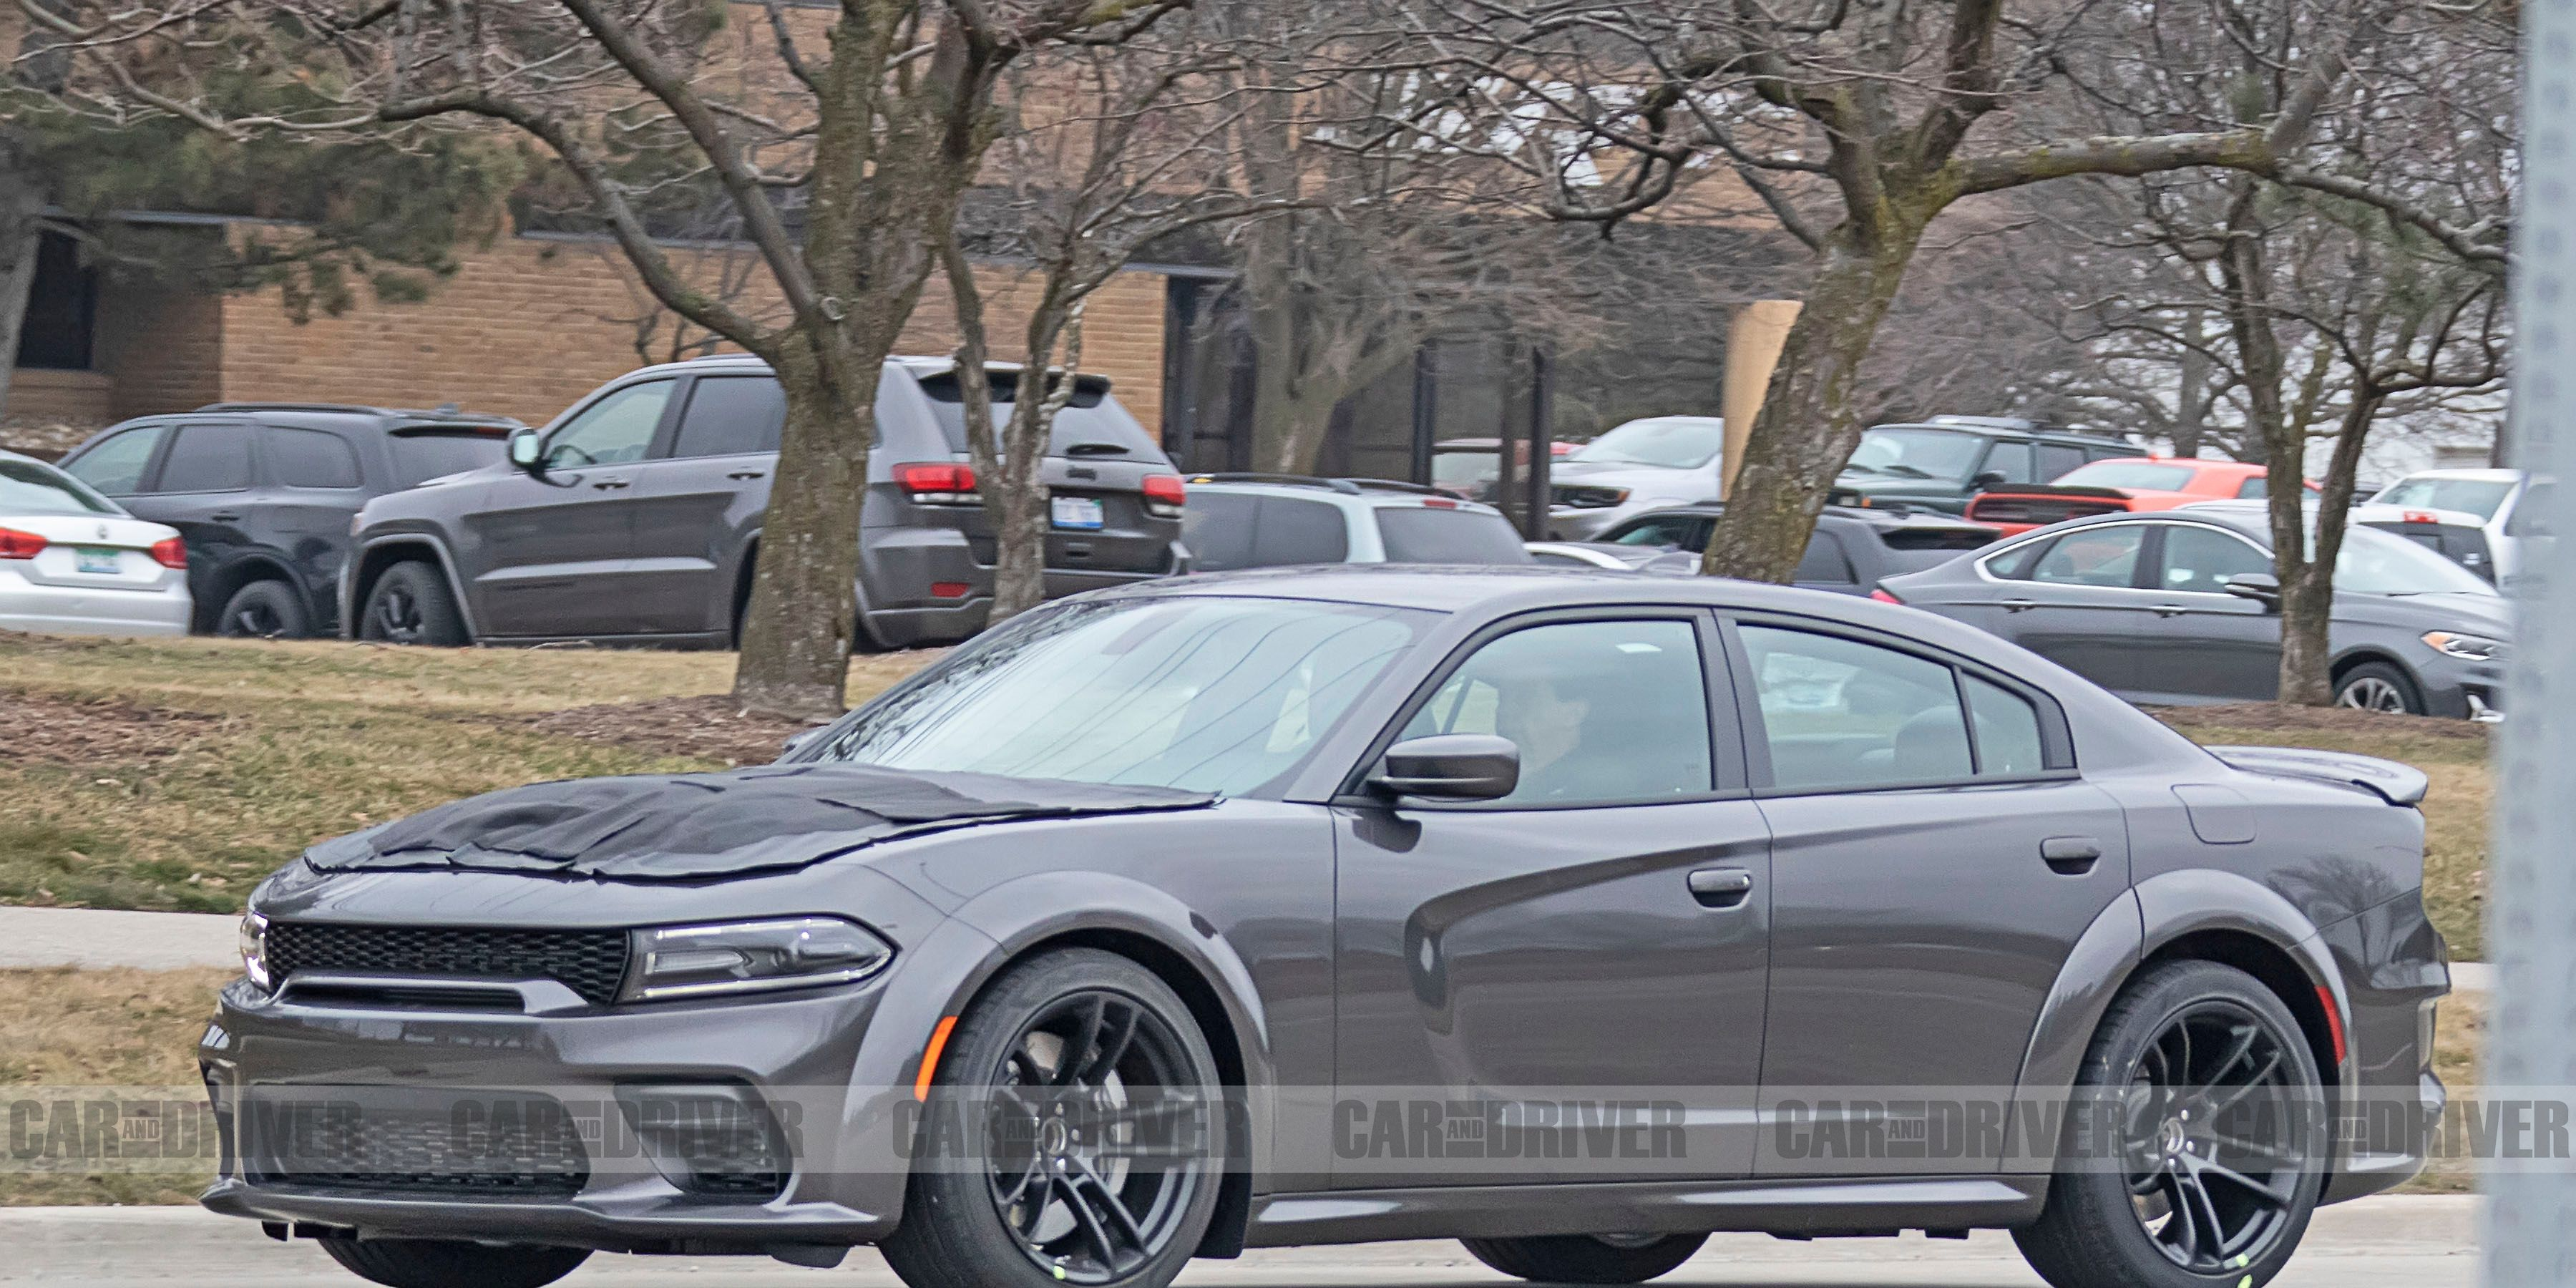 Dodge Charger SRT Hellcat Redeye Could Be Here Soon